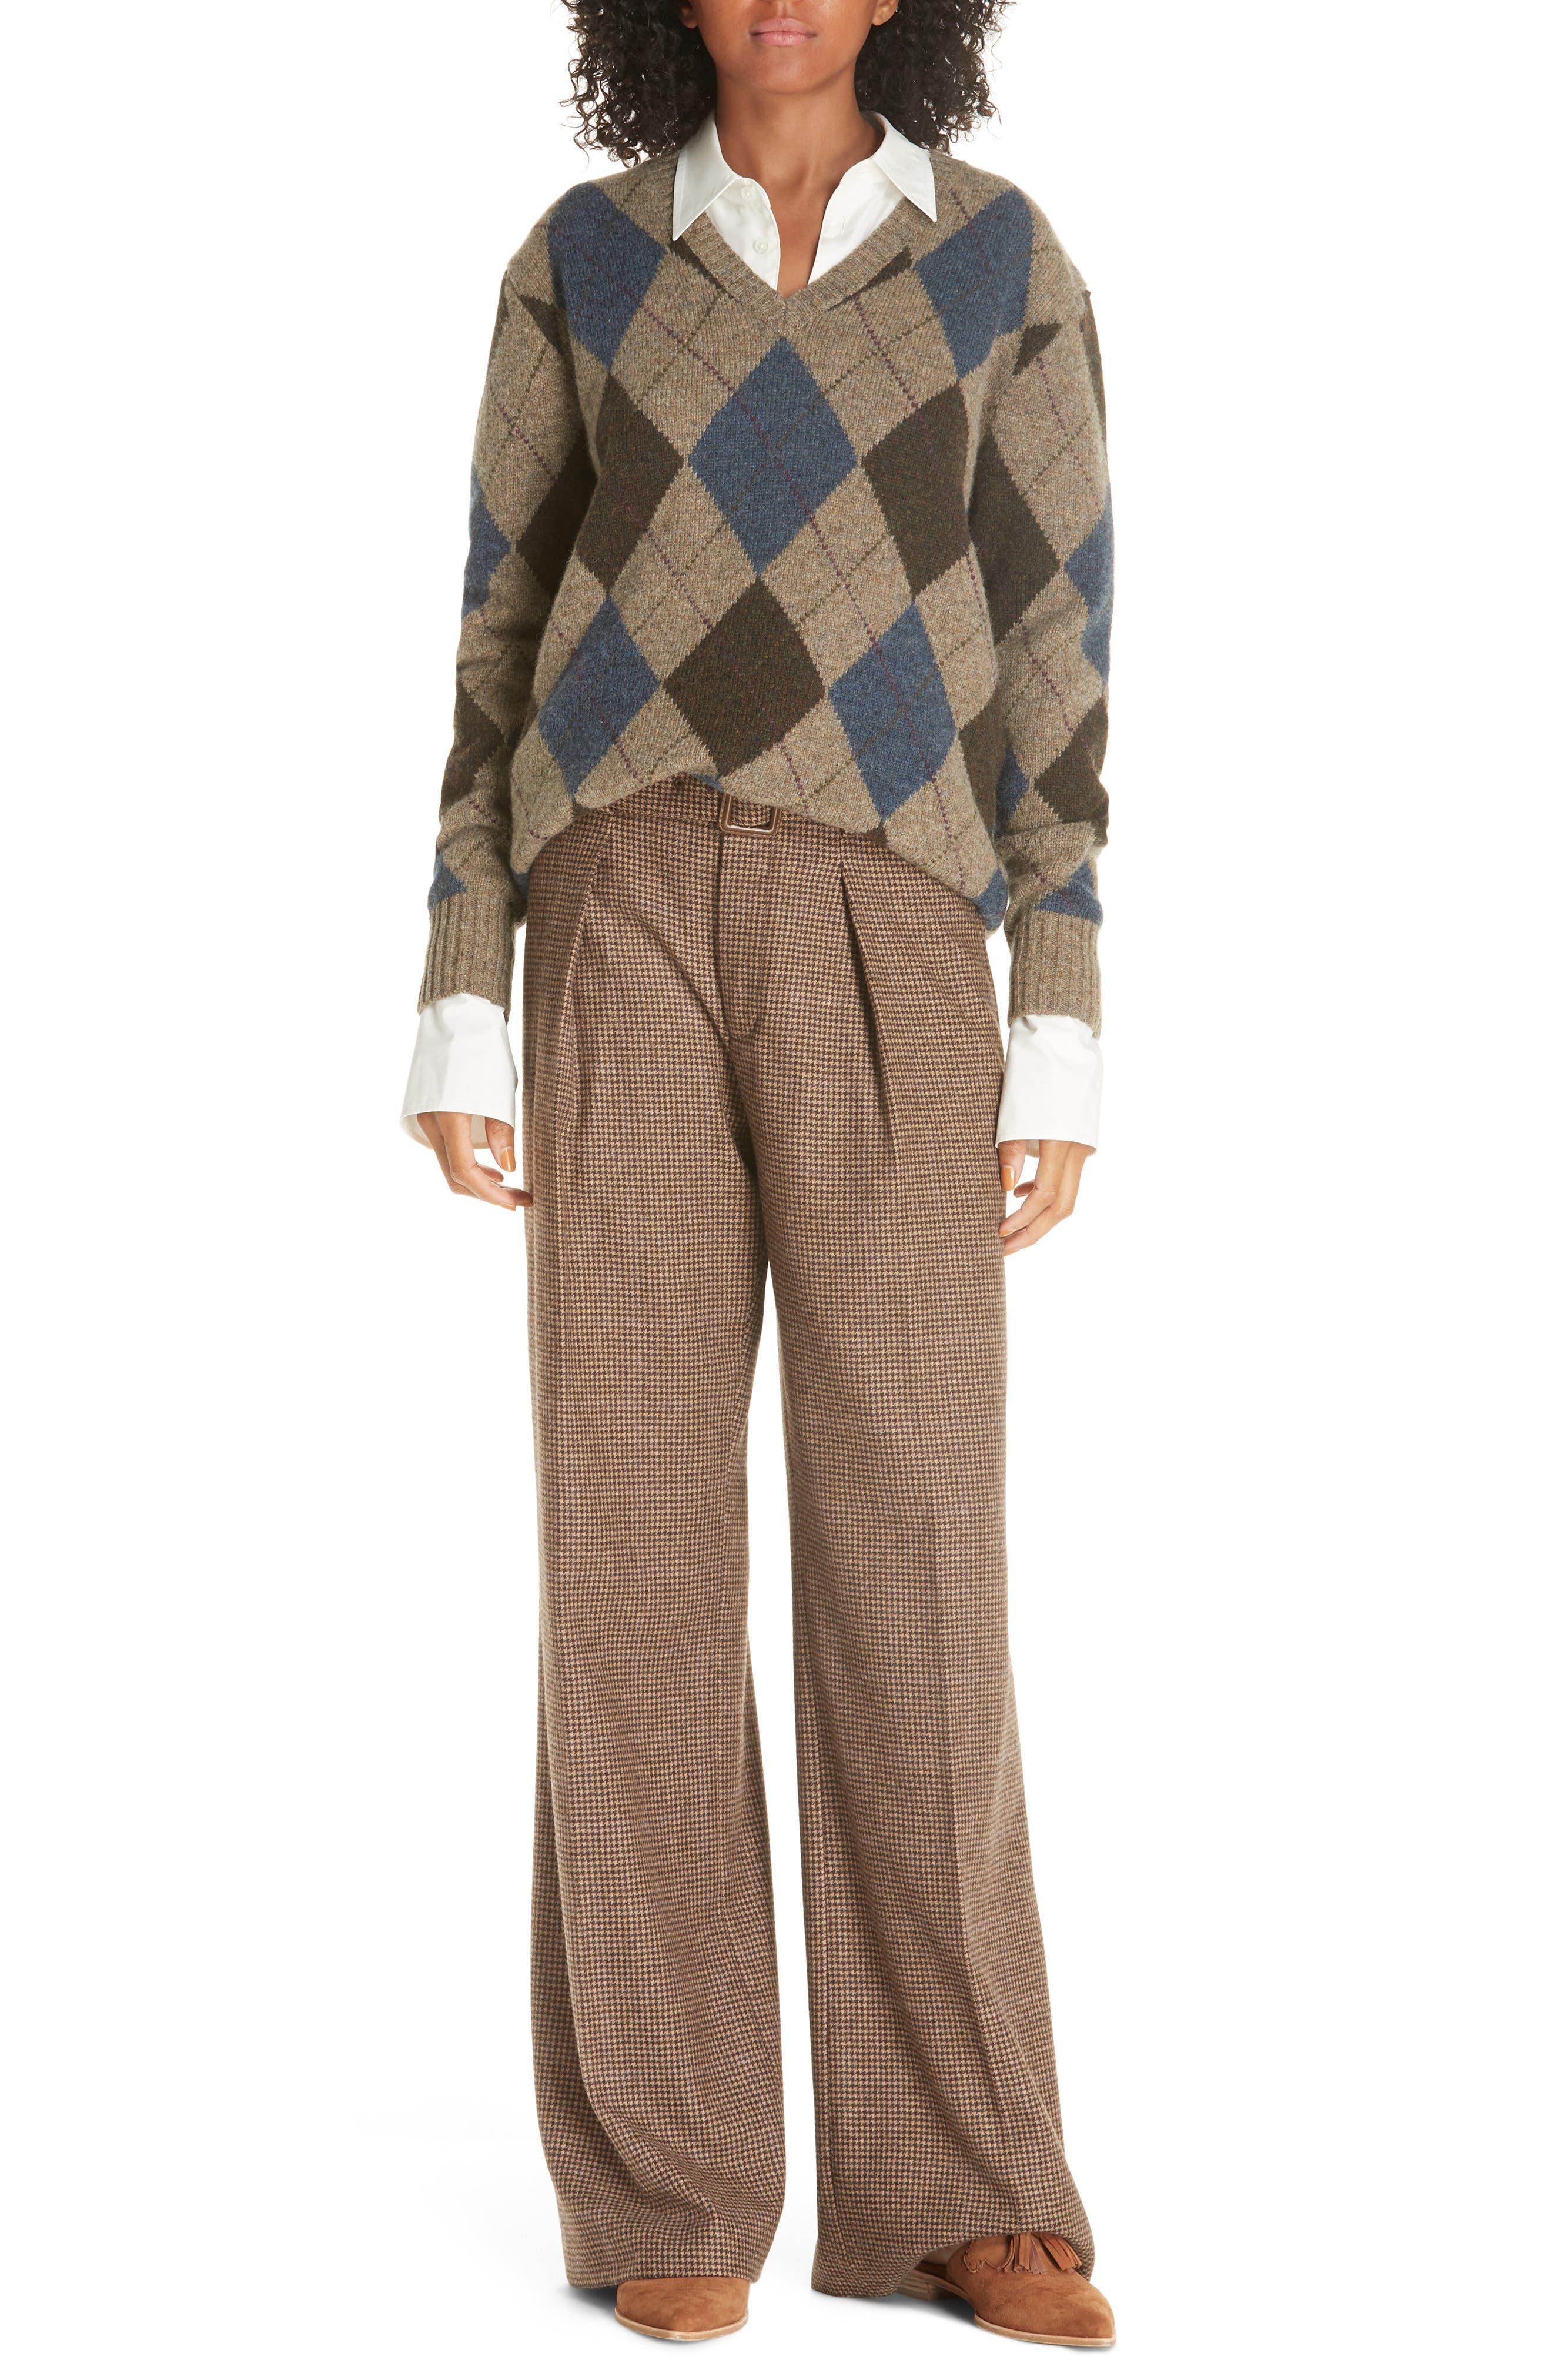 Vintage Sweaters – 1910s, 1920s, 1930s Pictures Womens Polo Ralph Lauren Argyle Sweater $209.98 AT vintagedancer.com